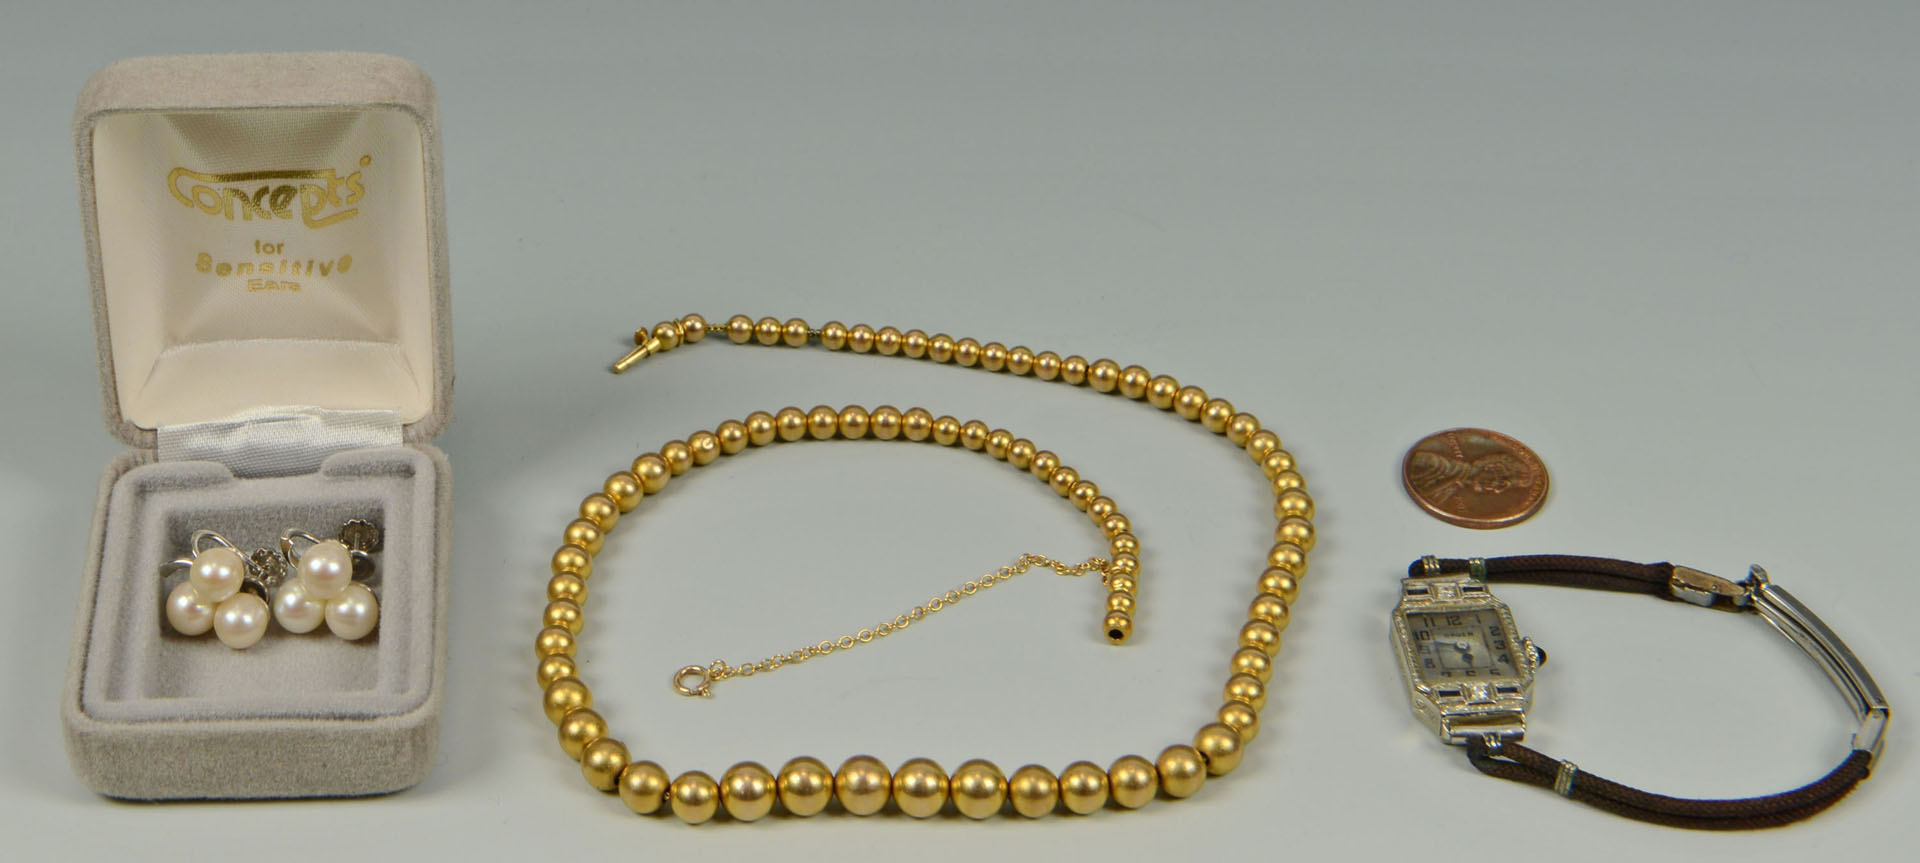 Group of 14k jewelry